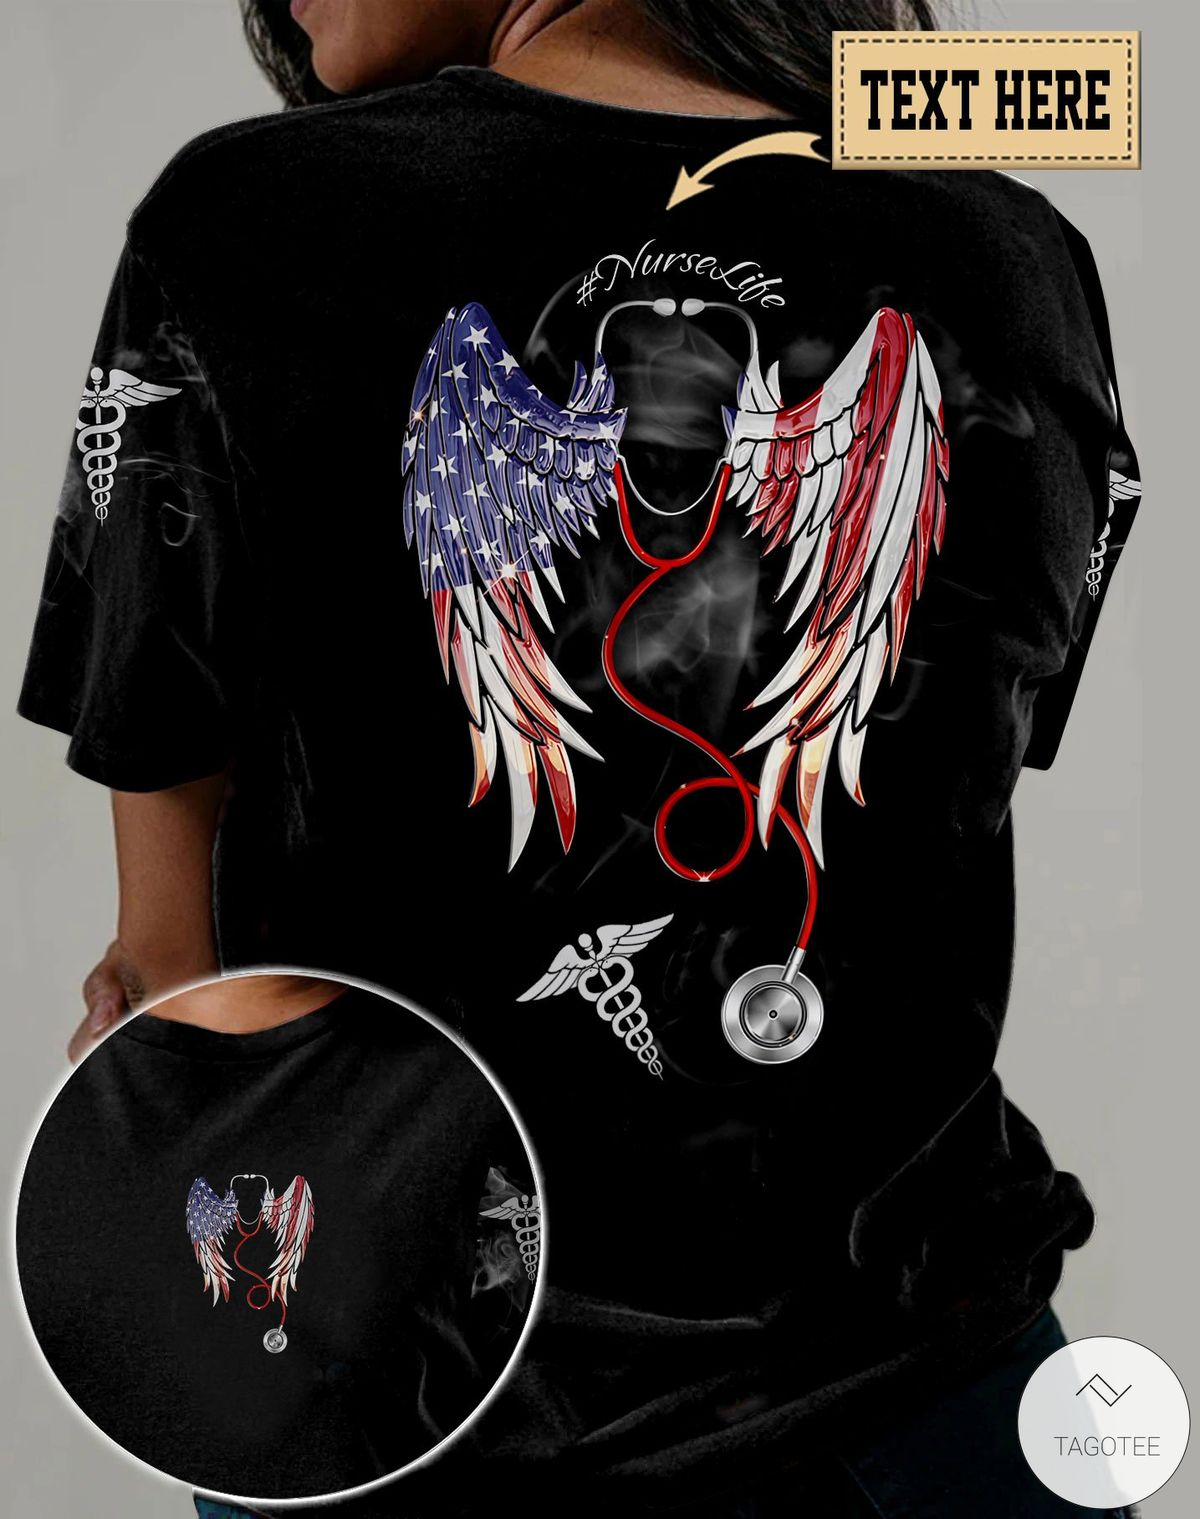 This Wings Came With The Scrubs 3D All Over Print T-shirt, Hoodie